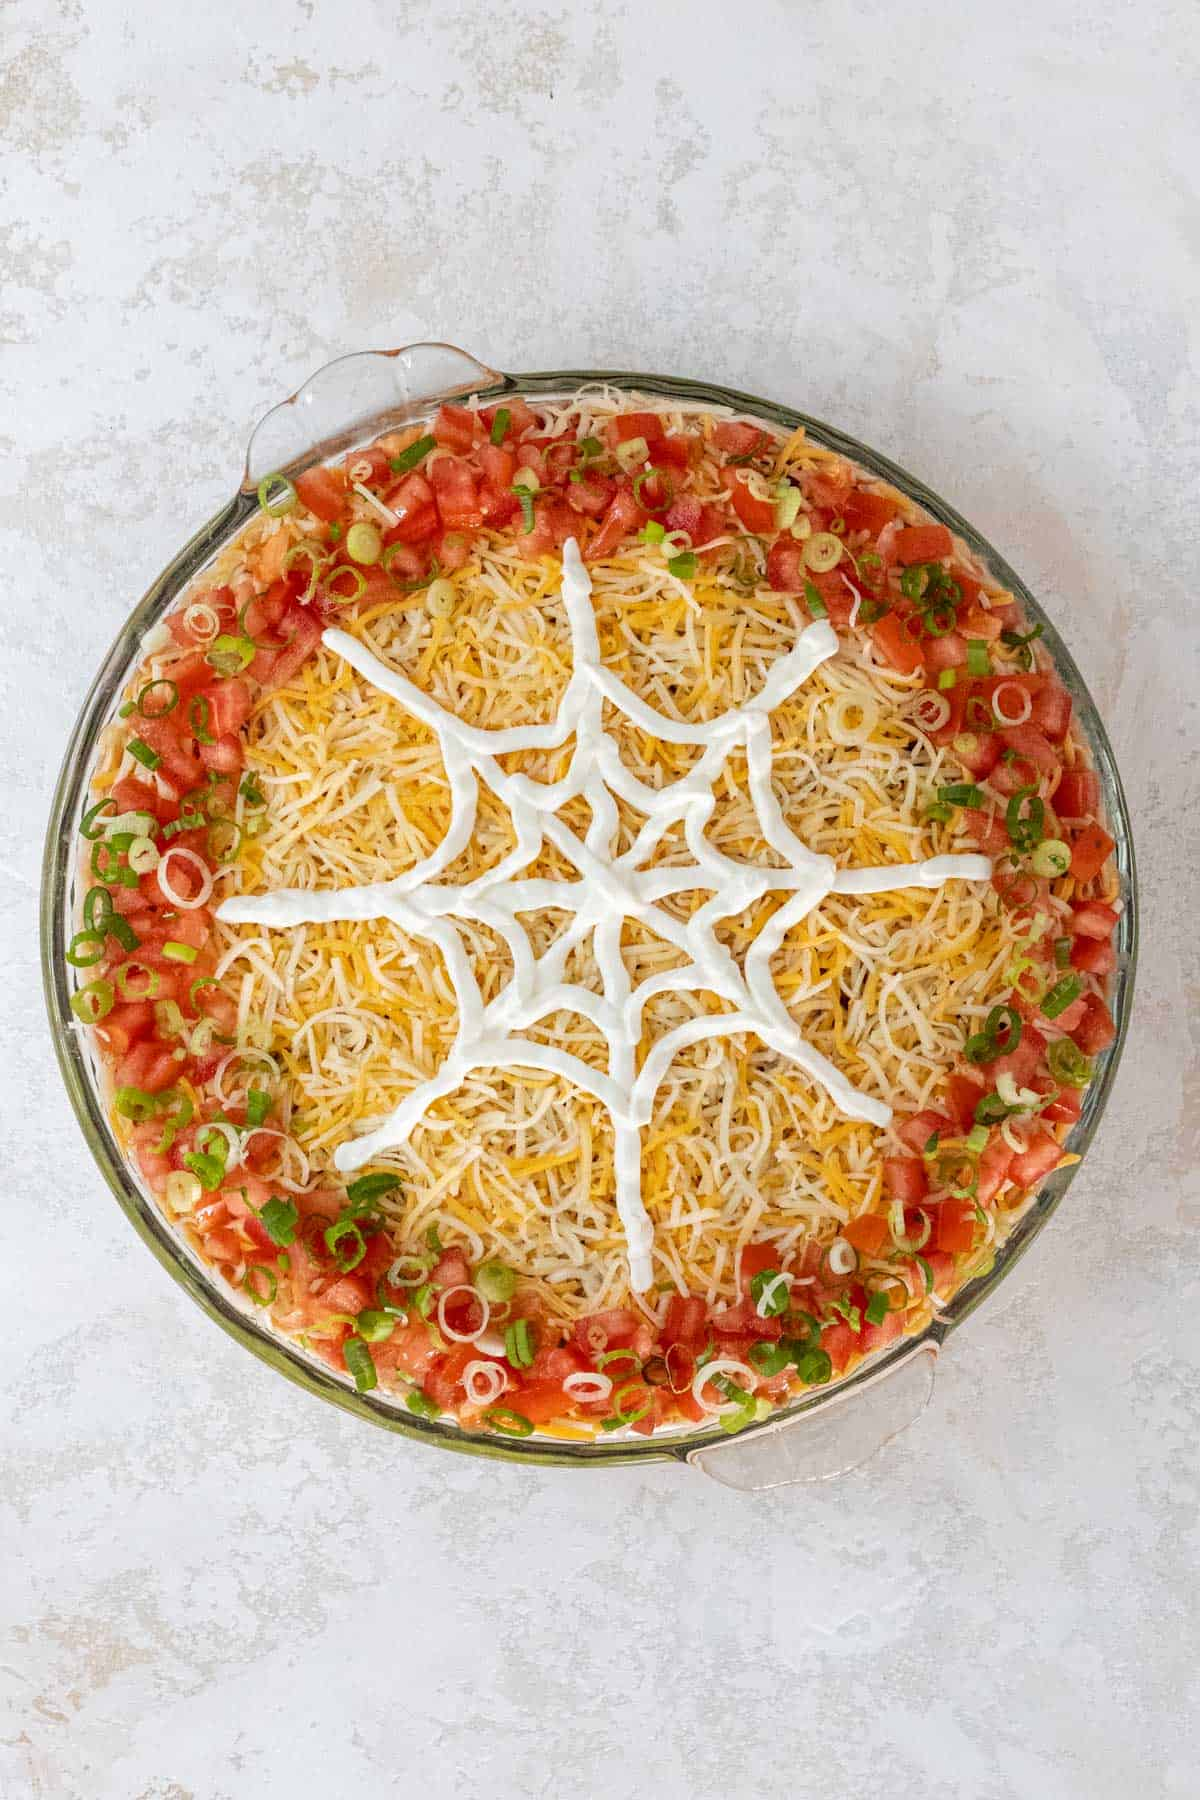 A sour cream spiderweb in progress on top of the shredded cheese.